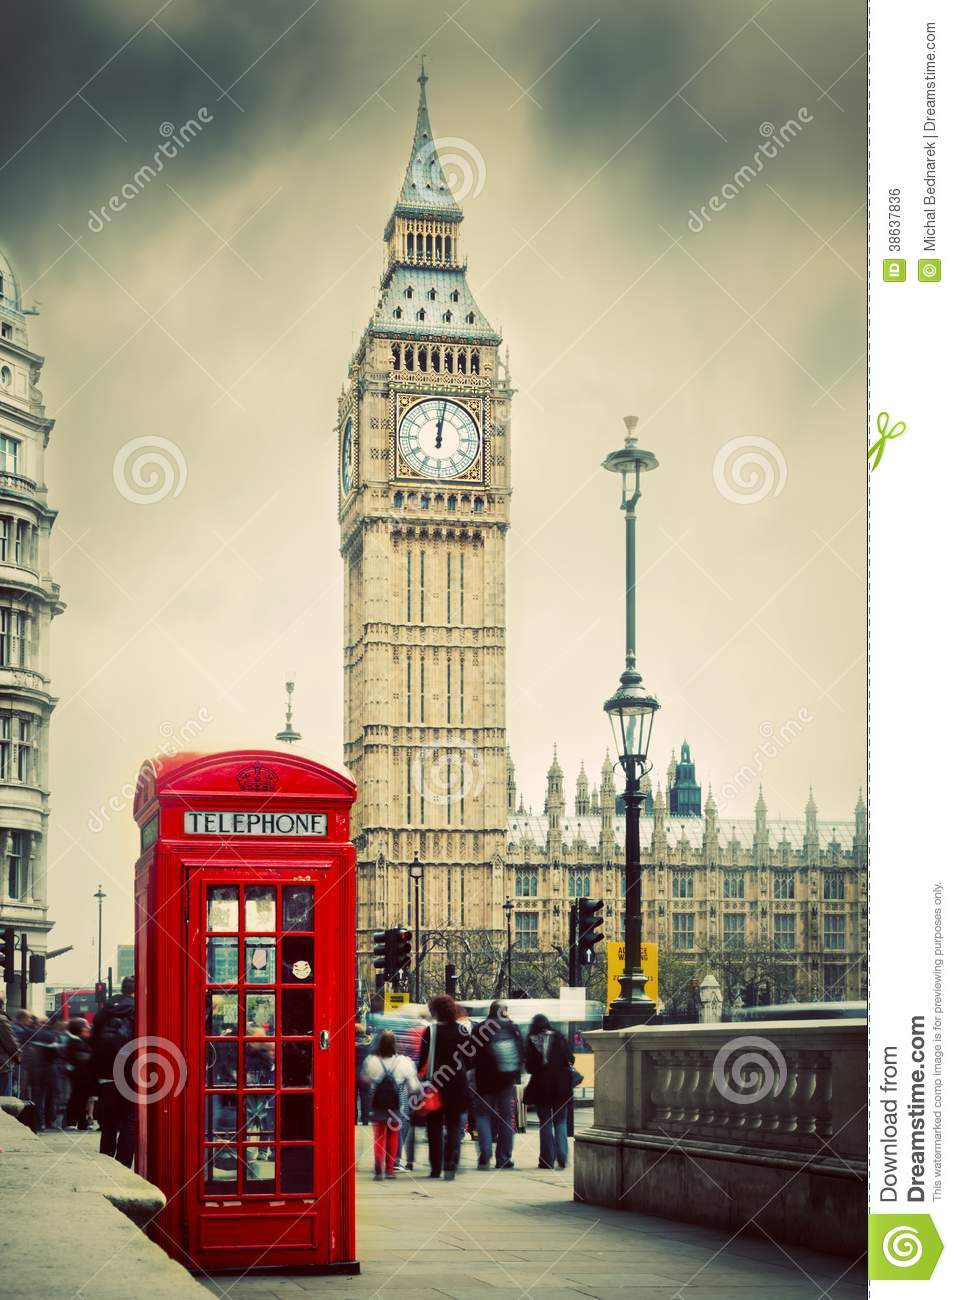 Red Telephone Booth And Big Ben In London, UK. Stock Photo ...